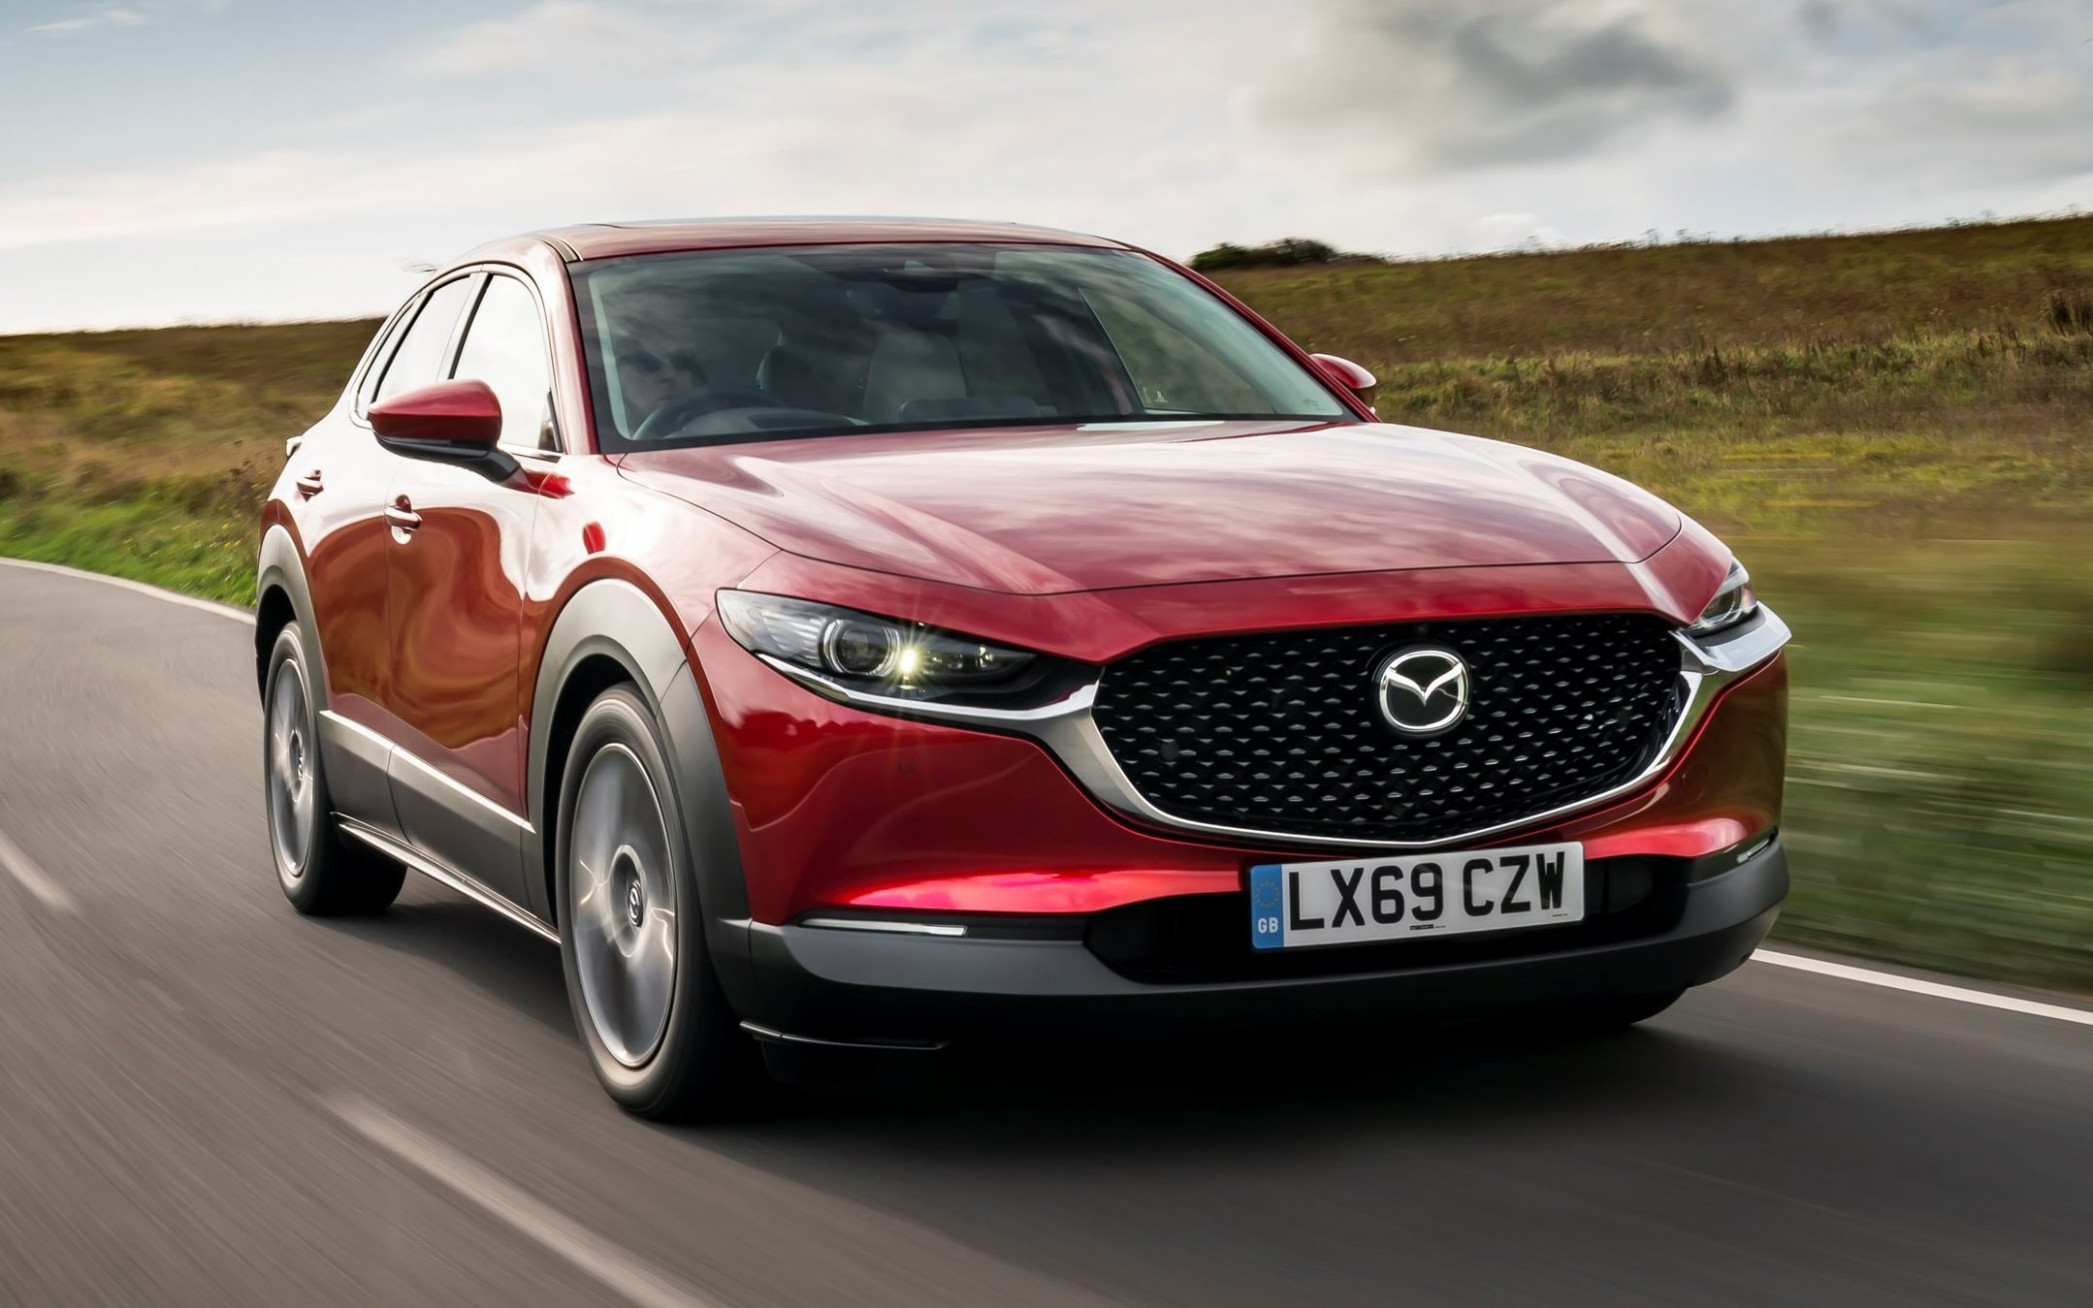 8 Mazda CX-8 review: the perfect family-sized SUV, spoiled by ..